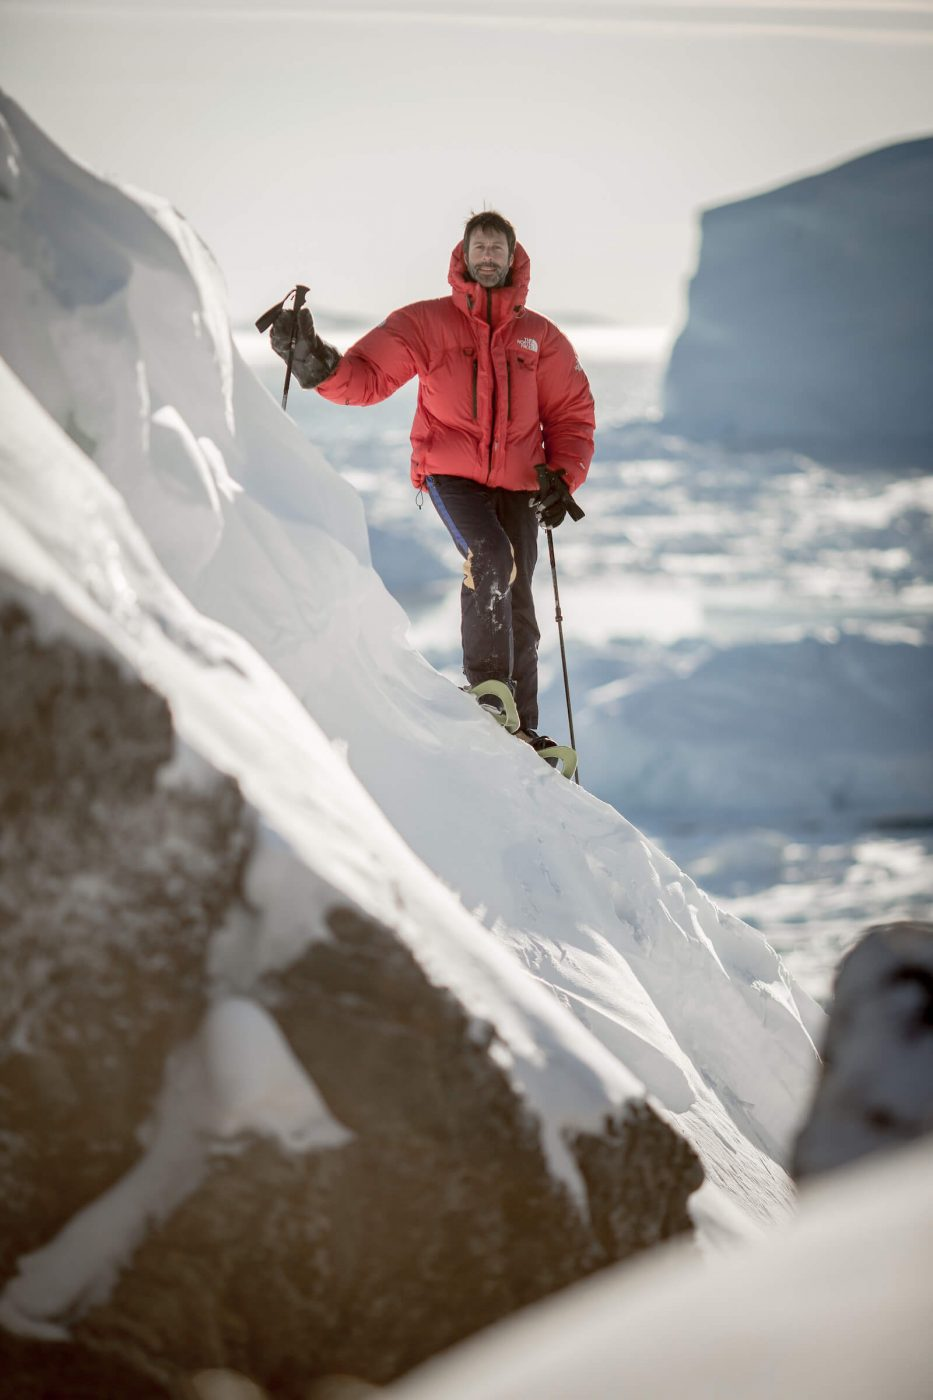 PGI Greenland guide and owner Marc Carreras snowshoeing at the Ilulissat ice fjord in Greenland. By Mads Pihl